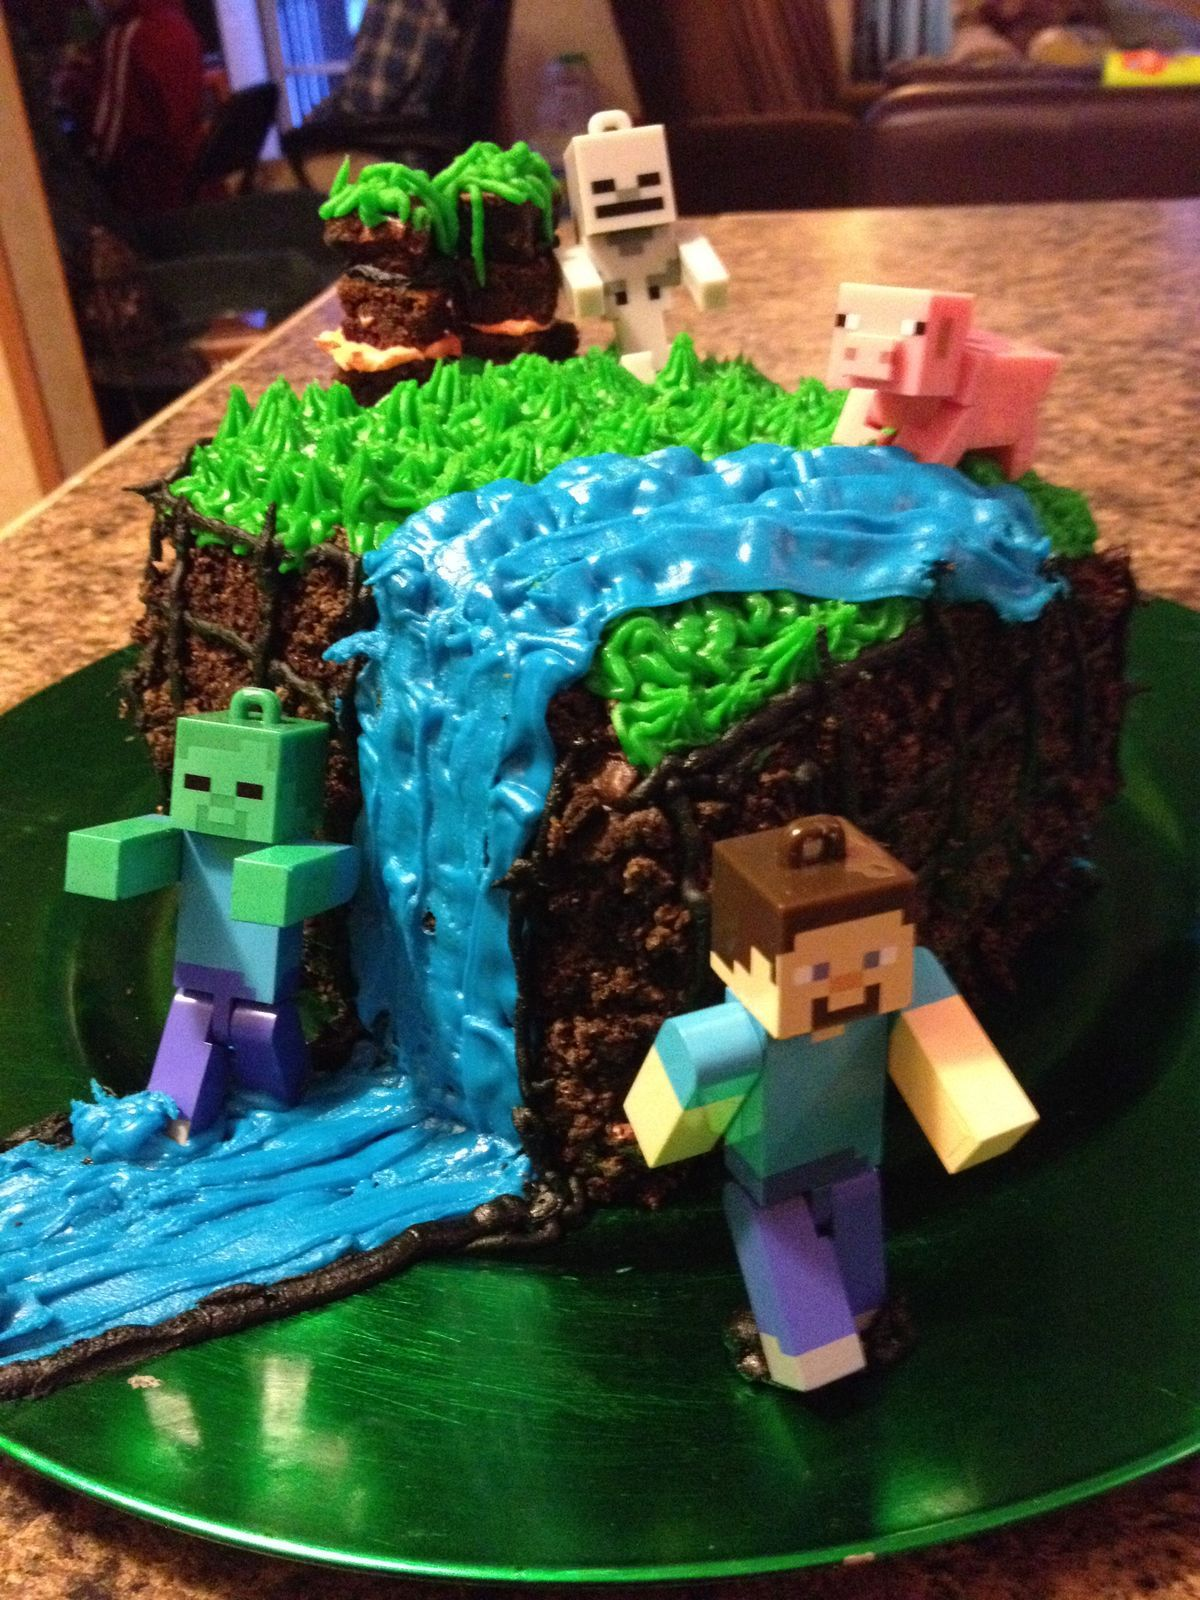 Minecraft Cake For My 12 Year Old S Bday Party It Is Three Layers The Frosting In Between Even Has A Lava Layer 9 Helped Frost